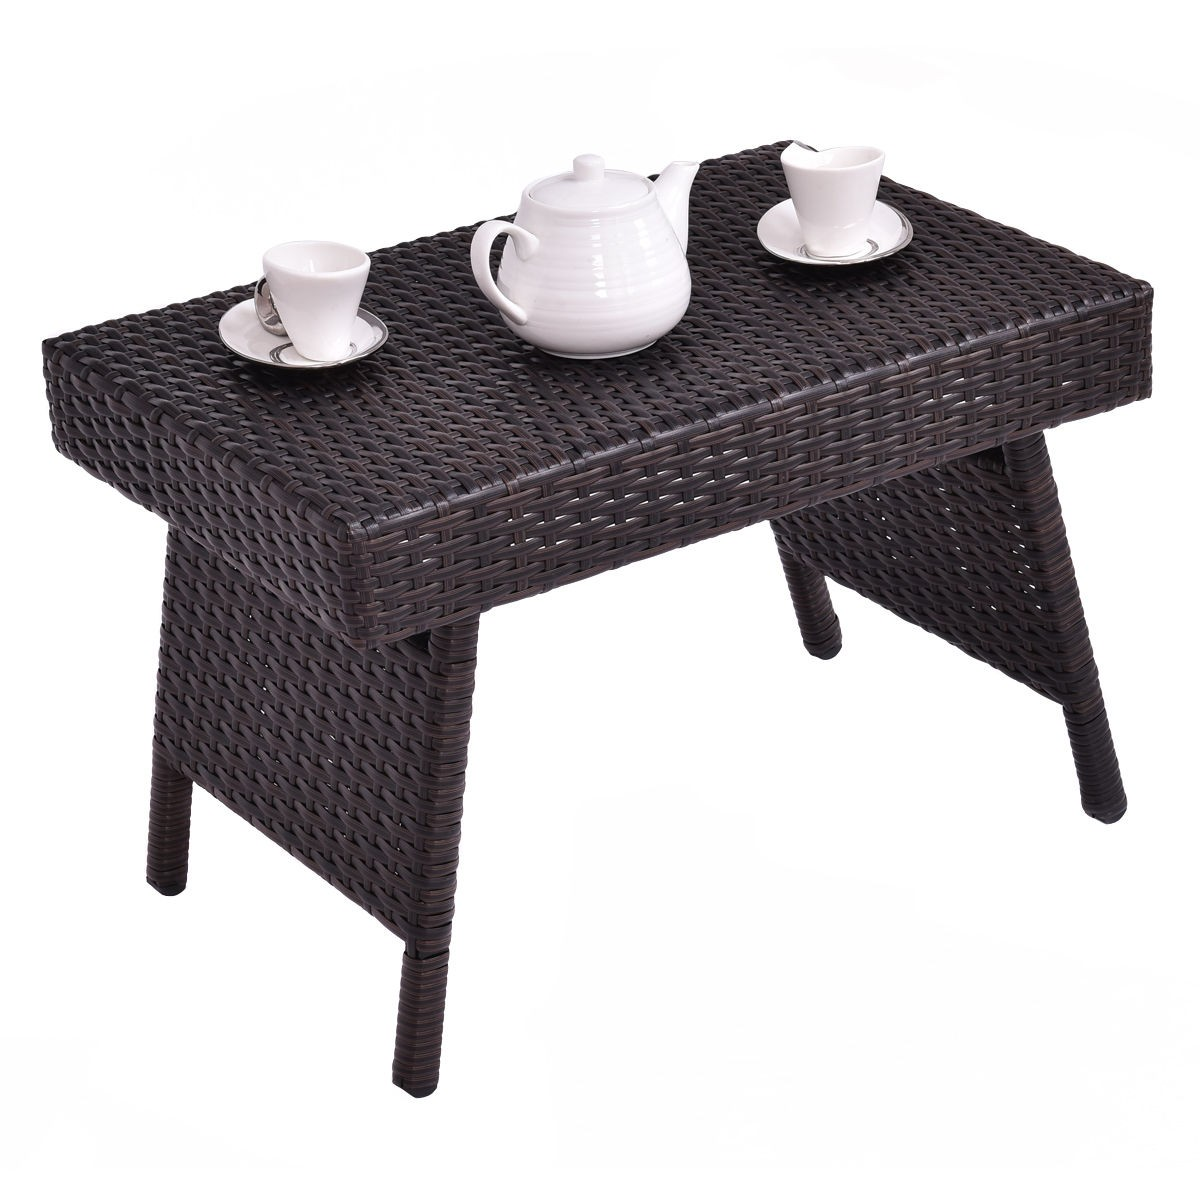 Wicker Coffee Table And End Tables: Vintage Mix Brown Patio Folding Rattan Side Coffee Table